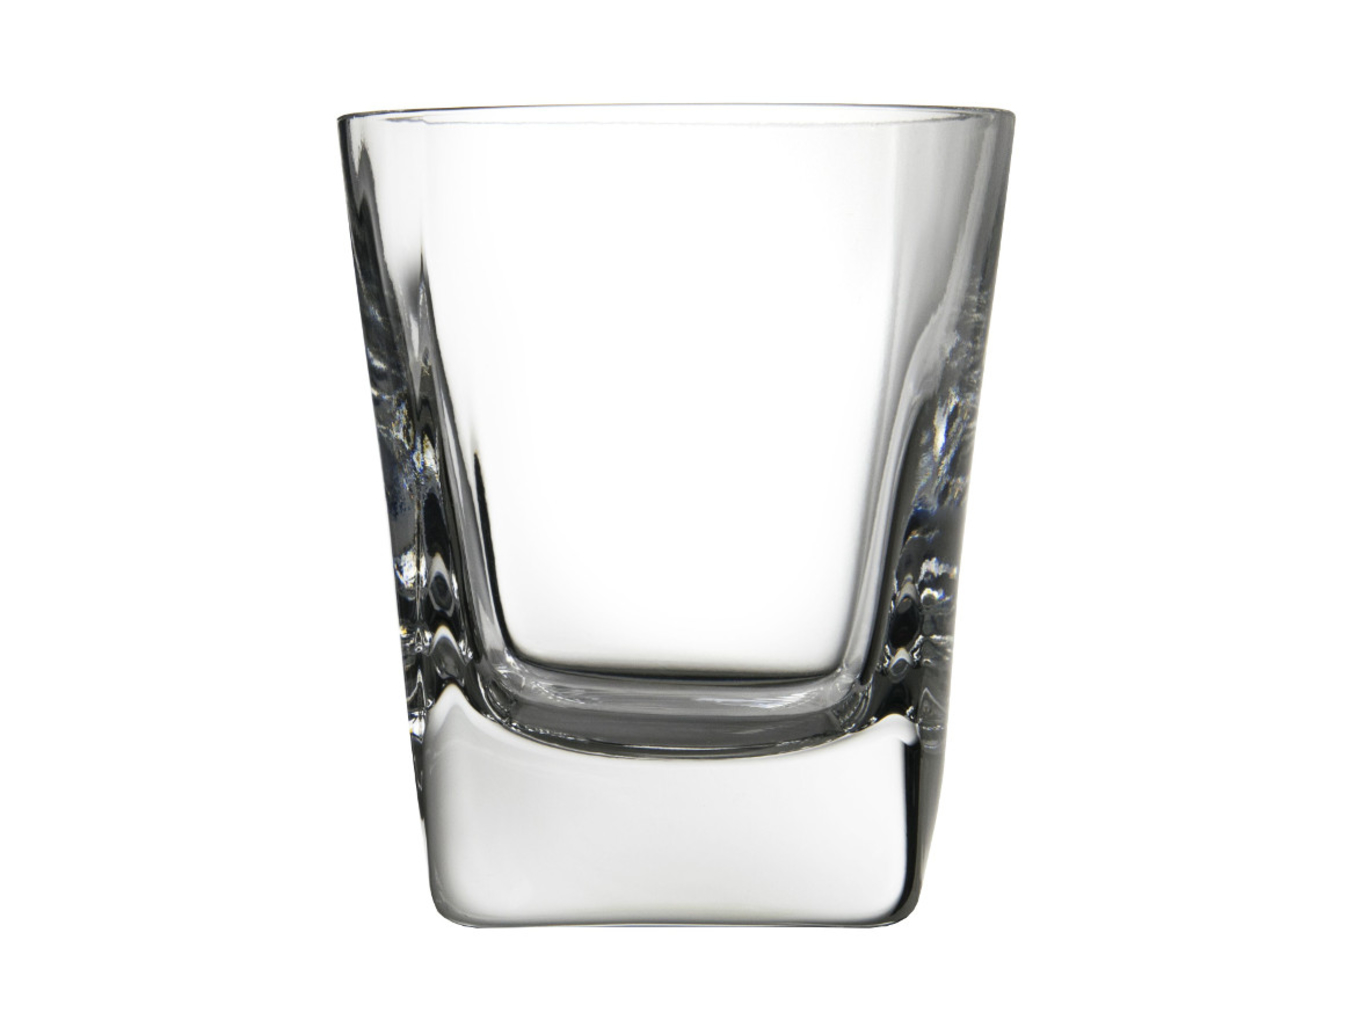 Urban Bar Qubo Double Old Fashioned 10.5oz / 30cl image 1